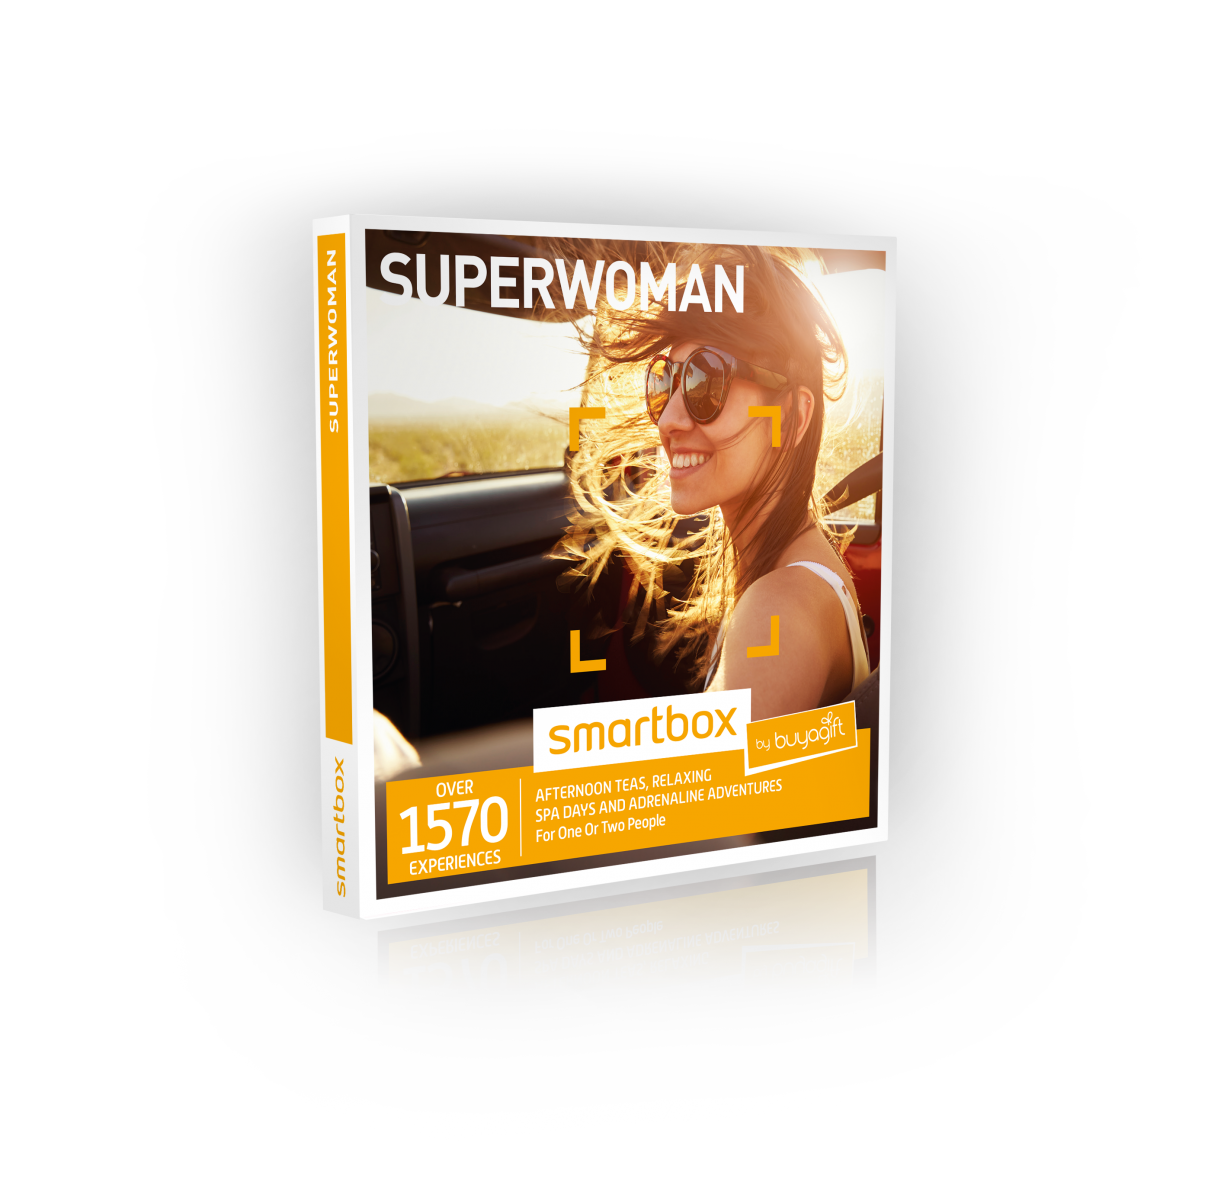 Christmas Competition #7: Win a Superwoman Smartbox Experience Day from Buyagift.com